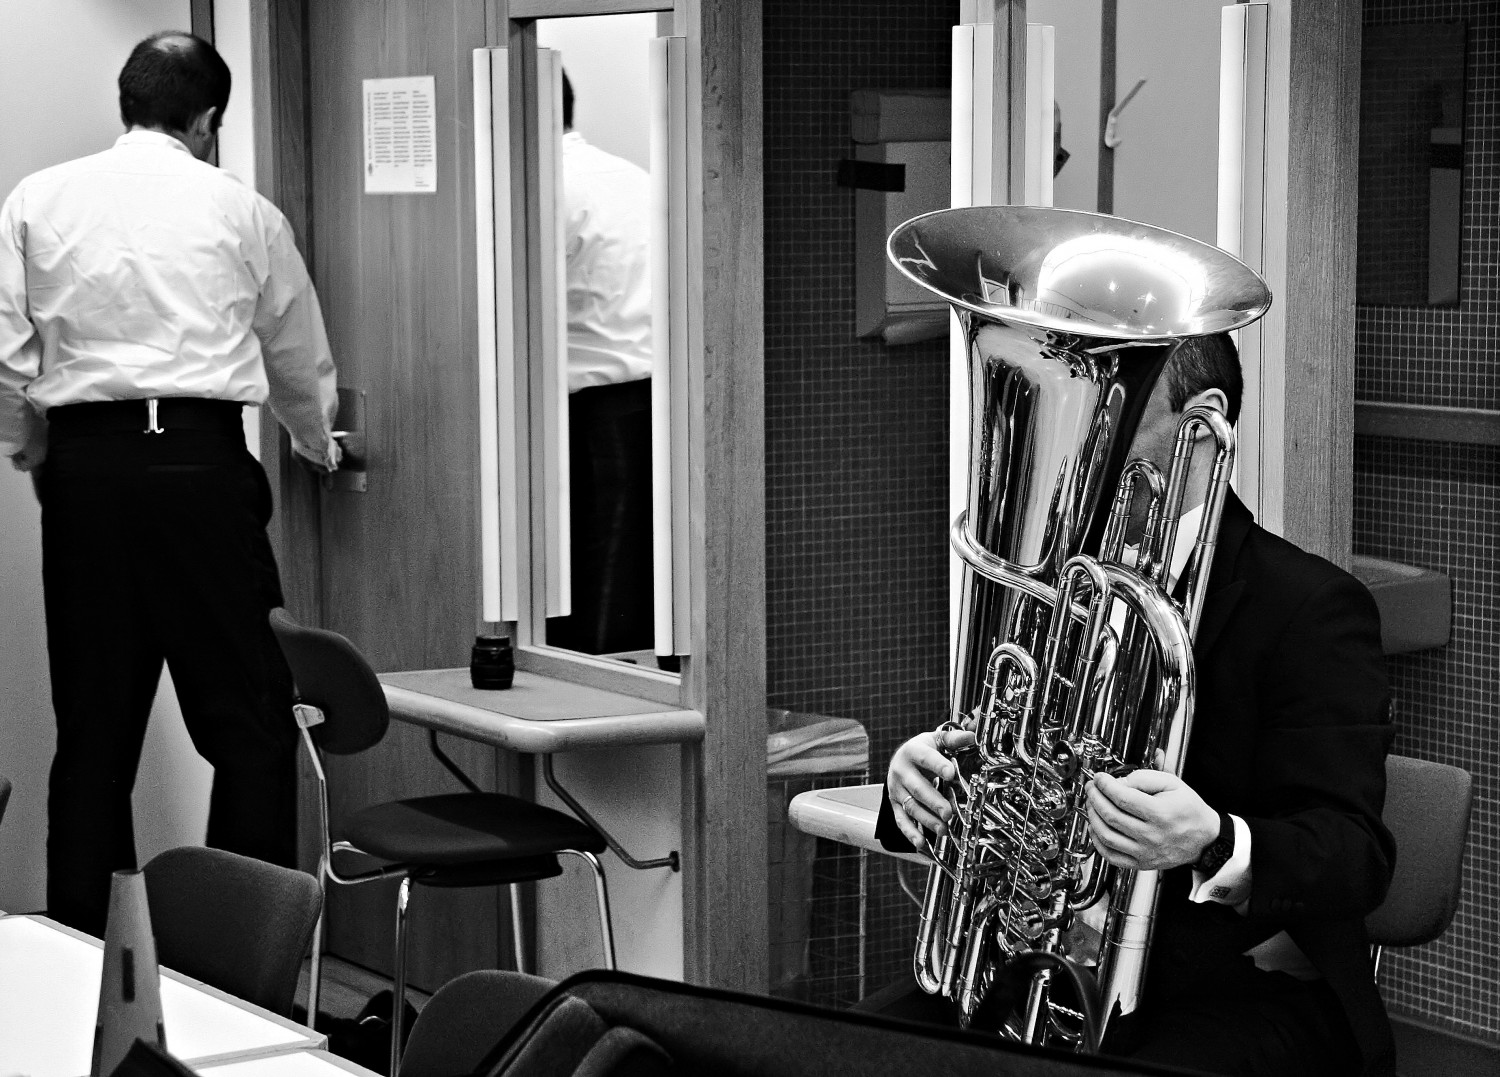 backstage Kölner Philharmonie